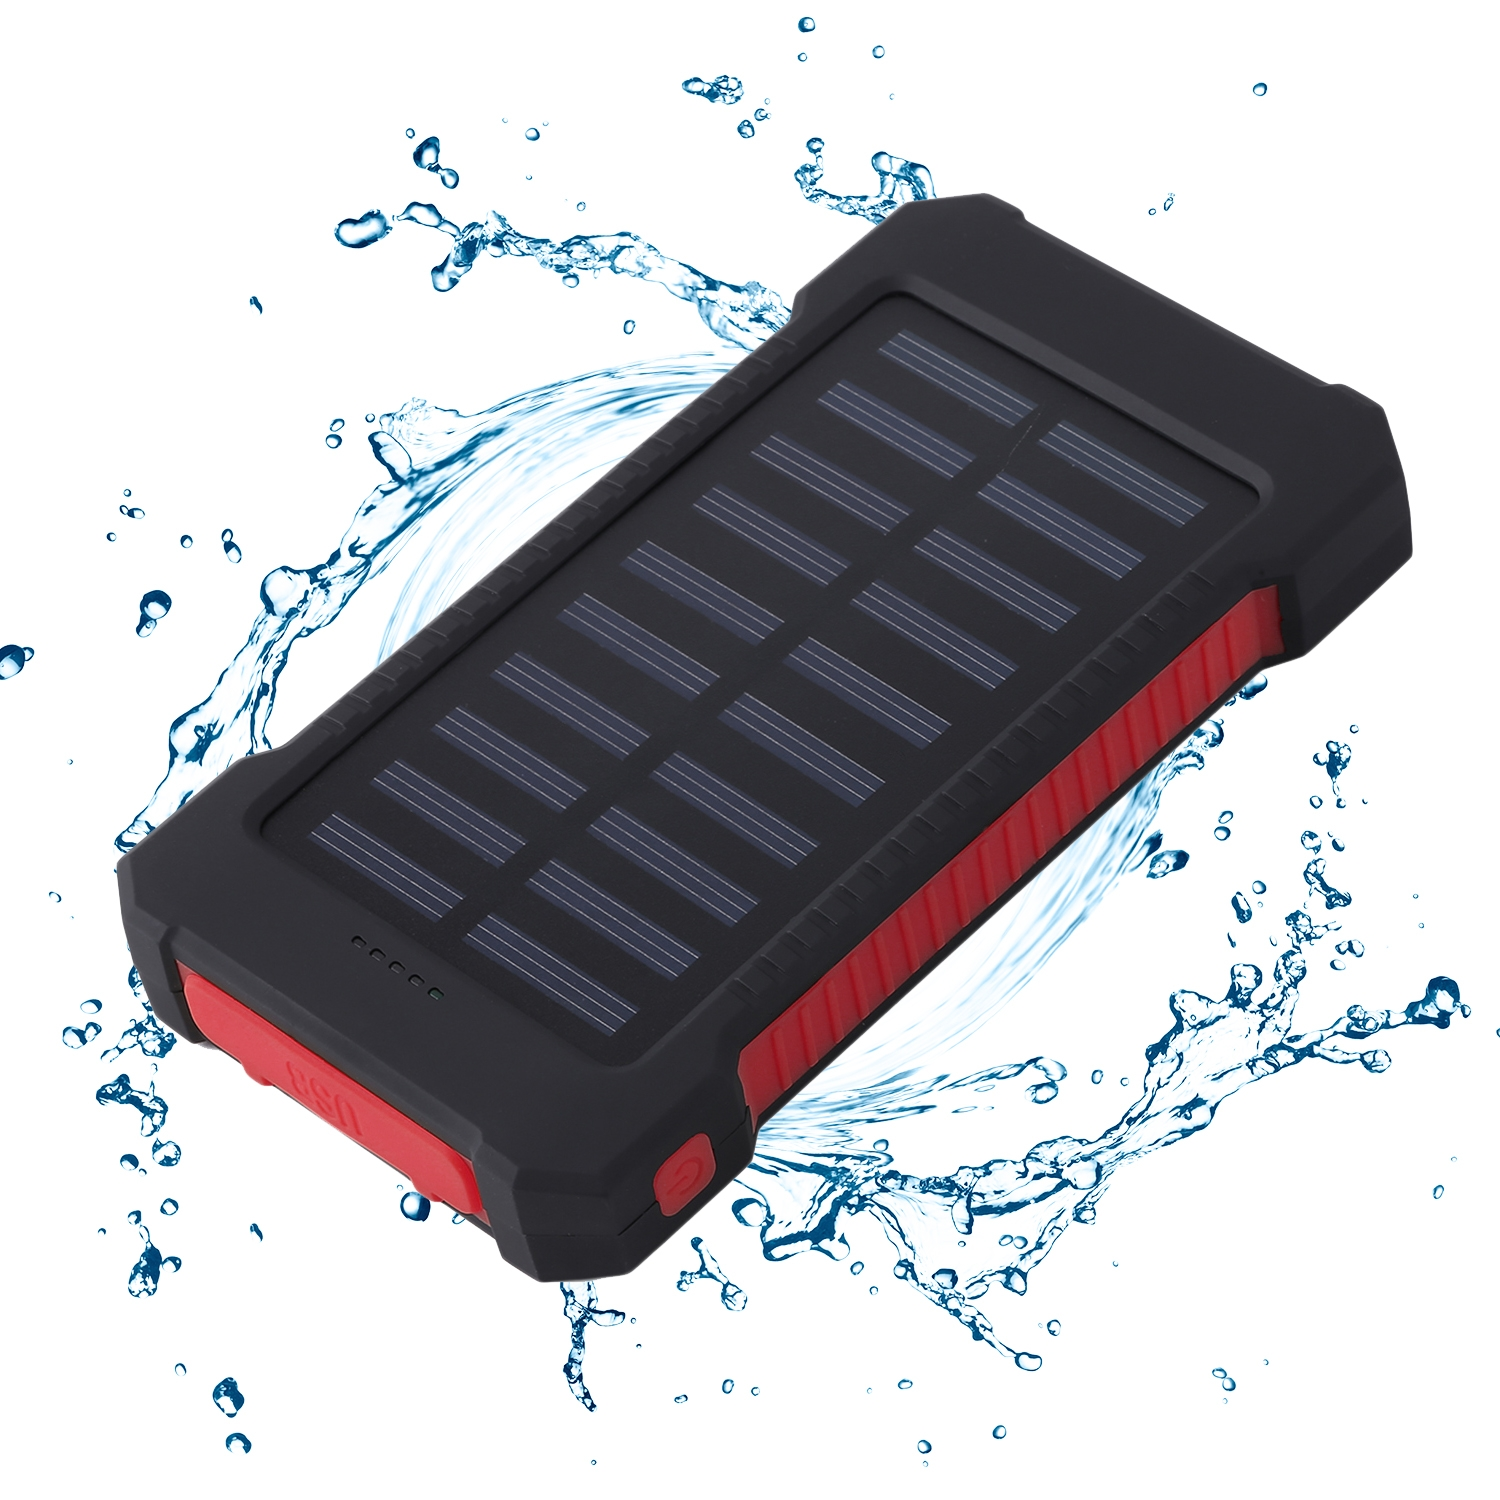 CNMODLE Portable Solar Battery Charger Dual USB Solar Power Bank External Battery For Mobile Phone 300000mAh Mobile Pover Bank